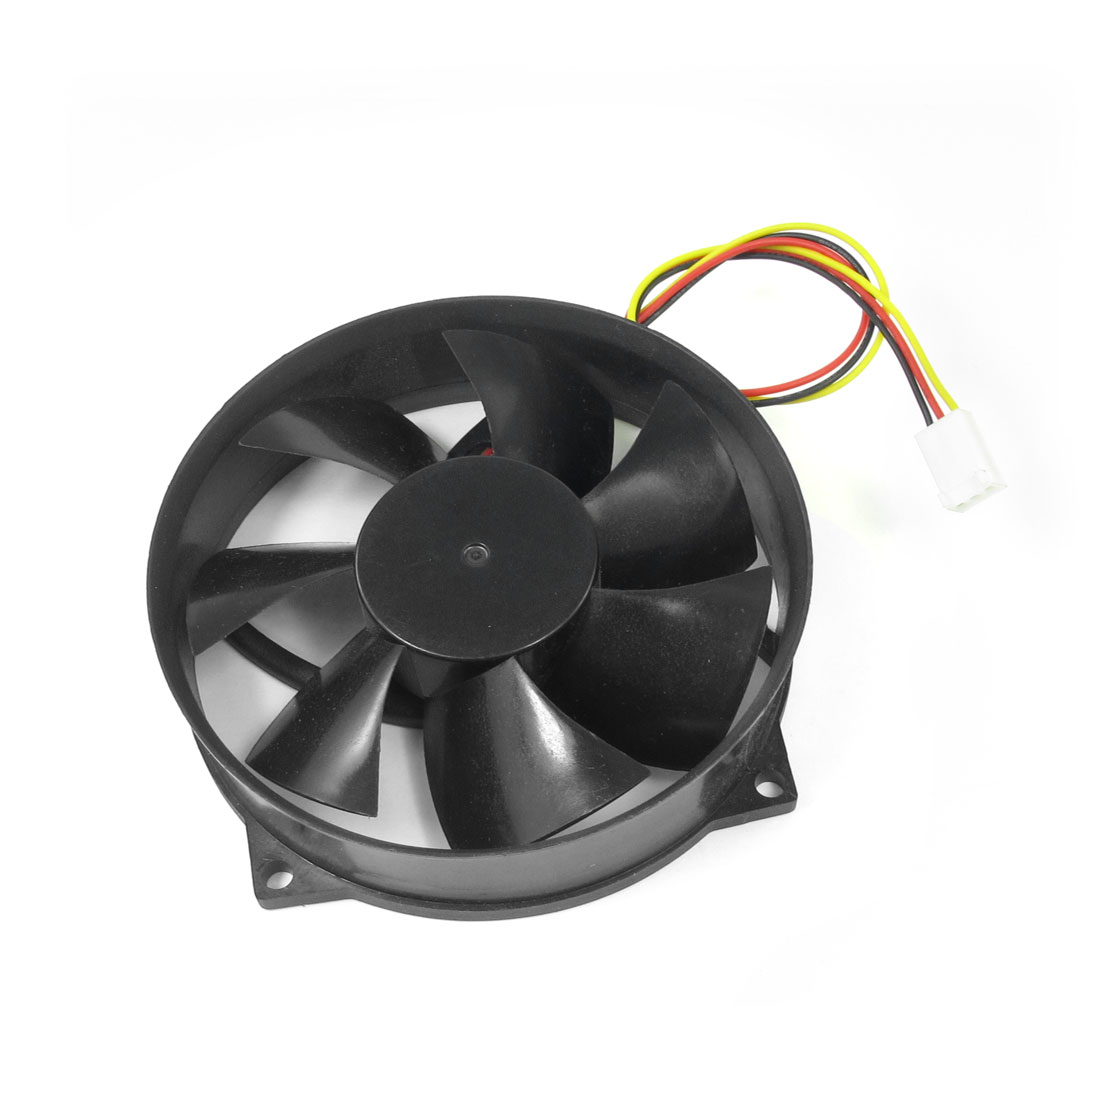 Desktop PC 3 Pin Connector DC 12V 0.18A Plastic Round Cooling Fan